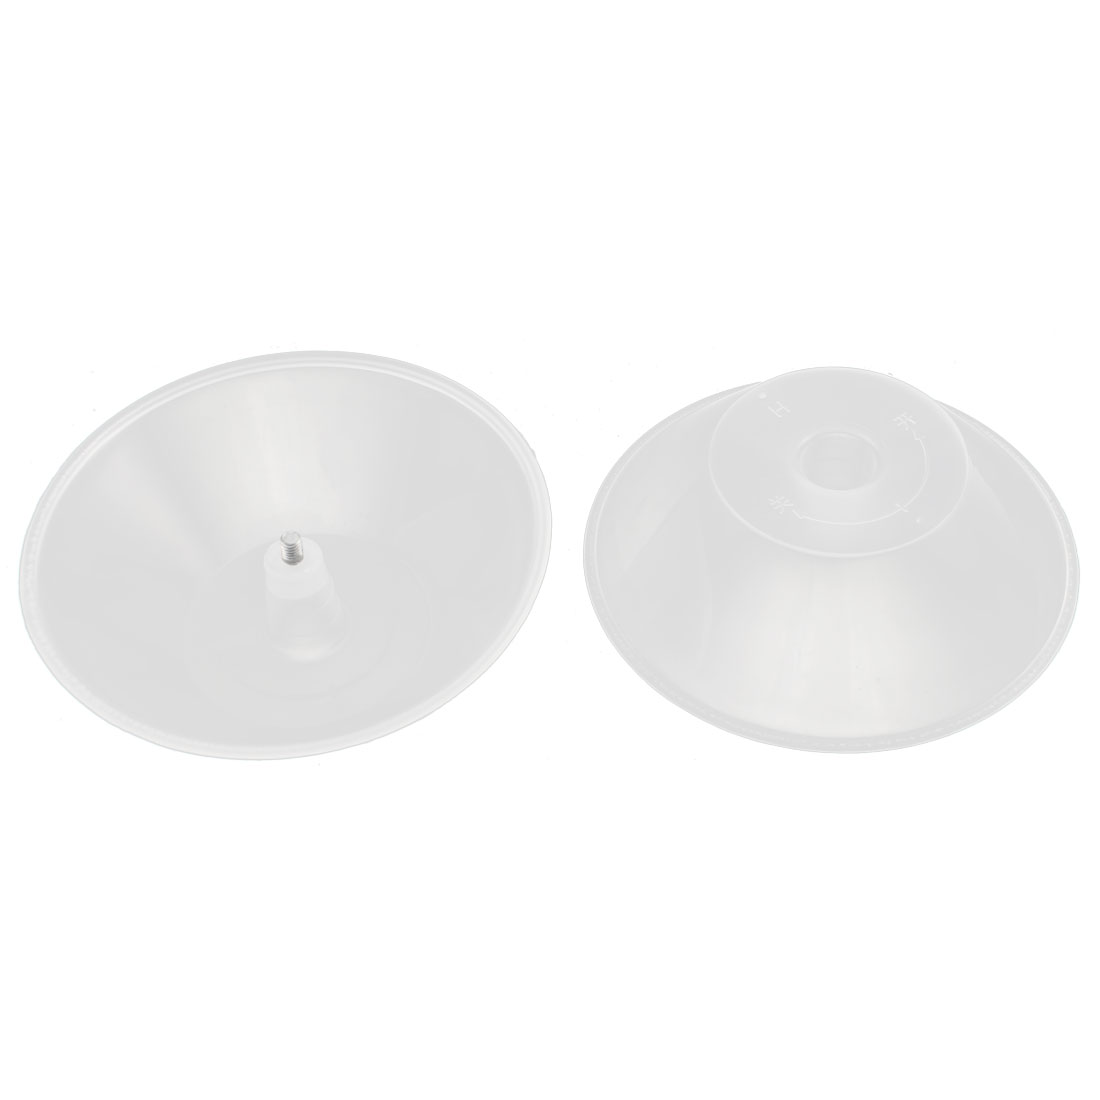 2PCS 4.3 Inch Dia Transparent Plastic Oil Collecting Cup Tray Filter Kitchen Range Hoods Parts